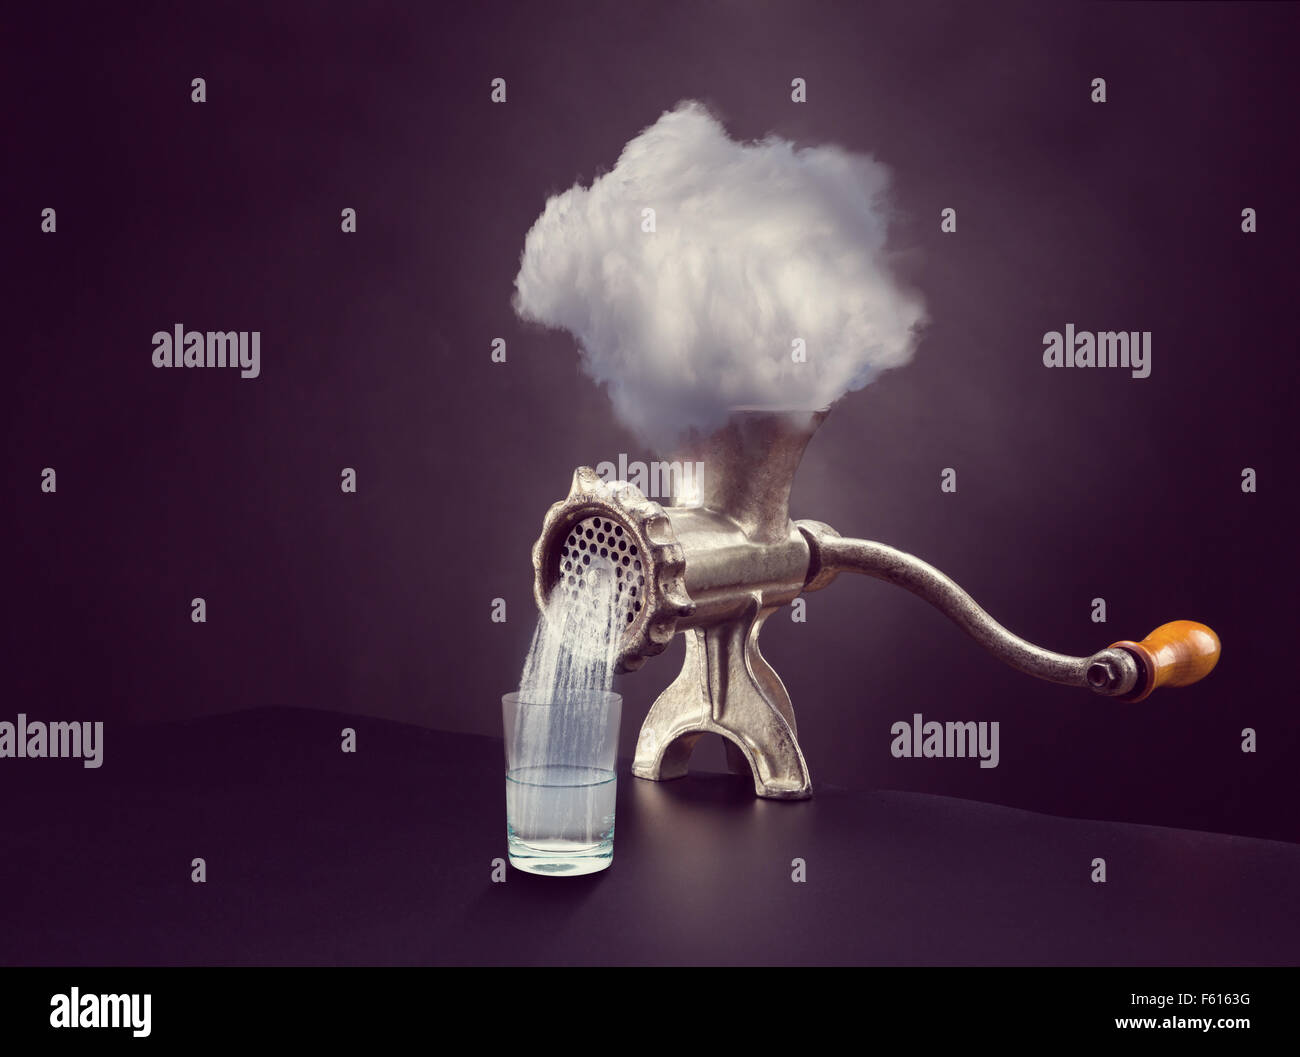 Cloud in the grinder over gray background - Stock Image